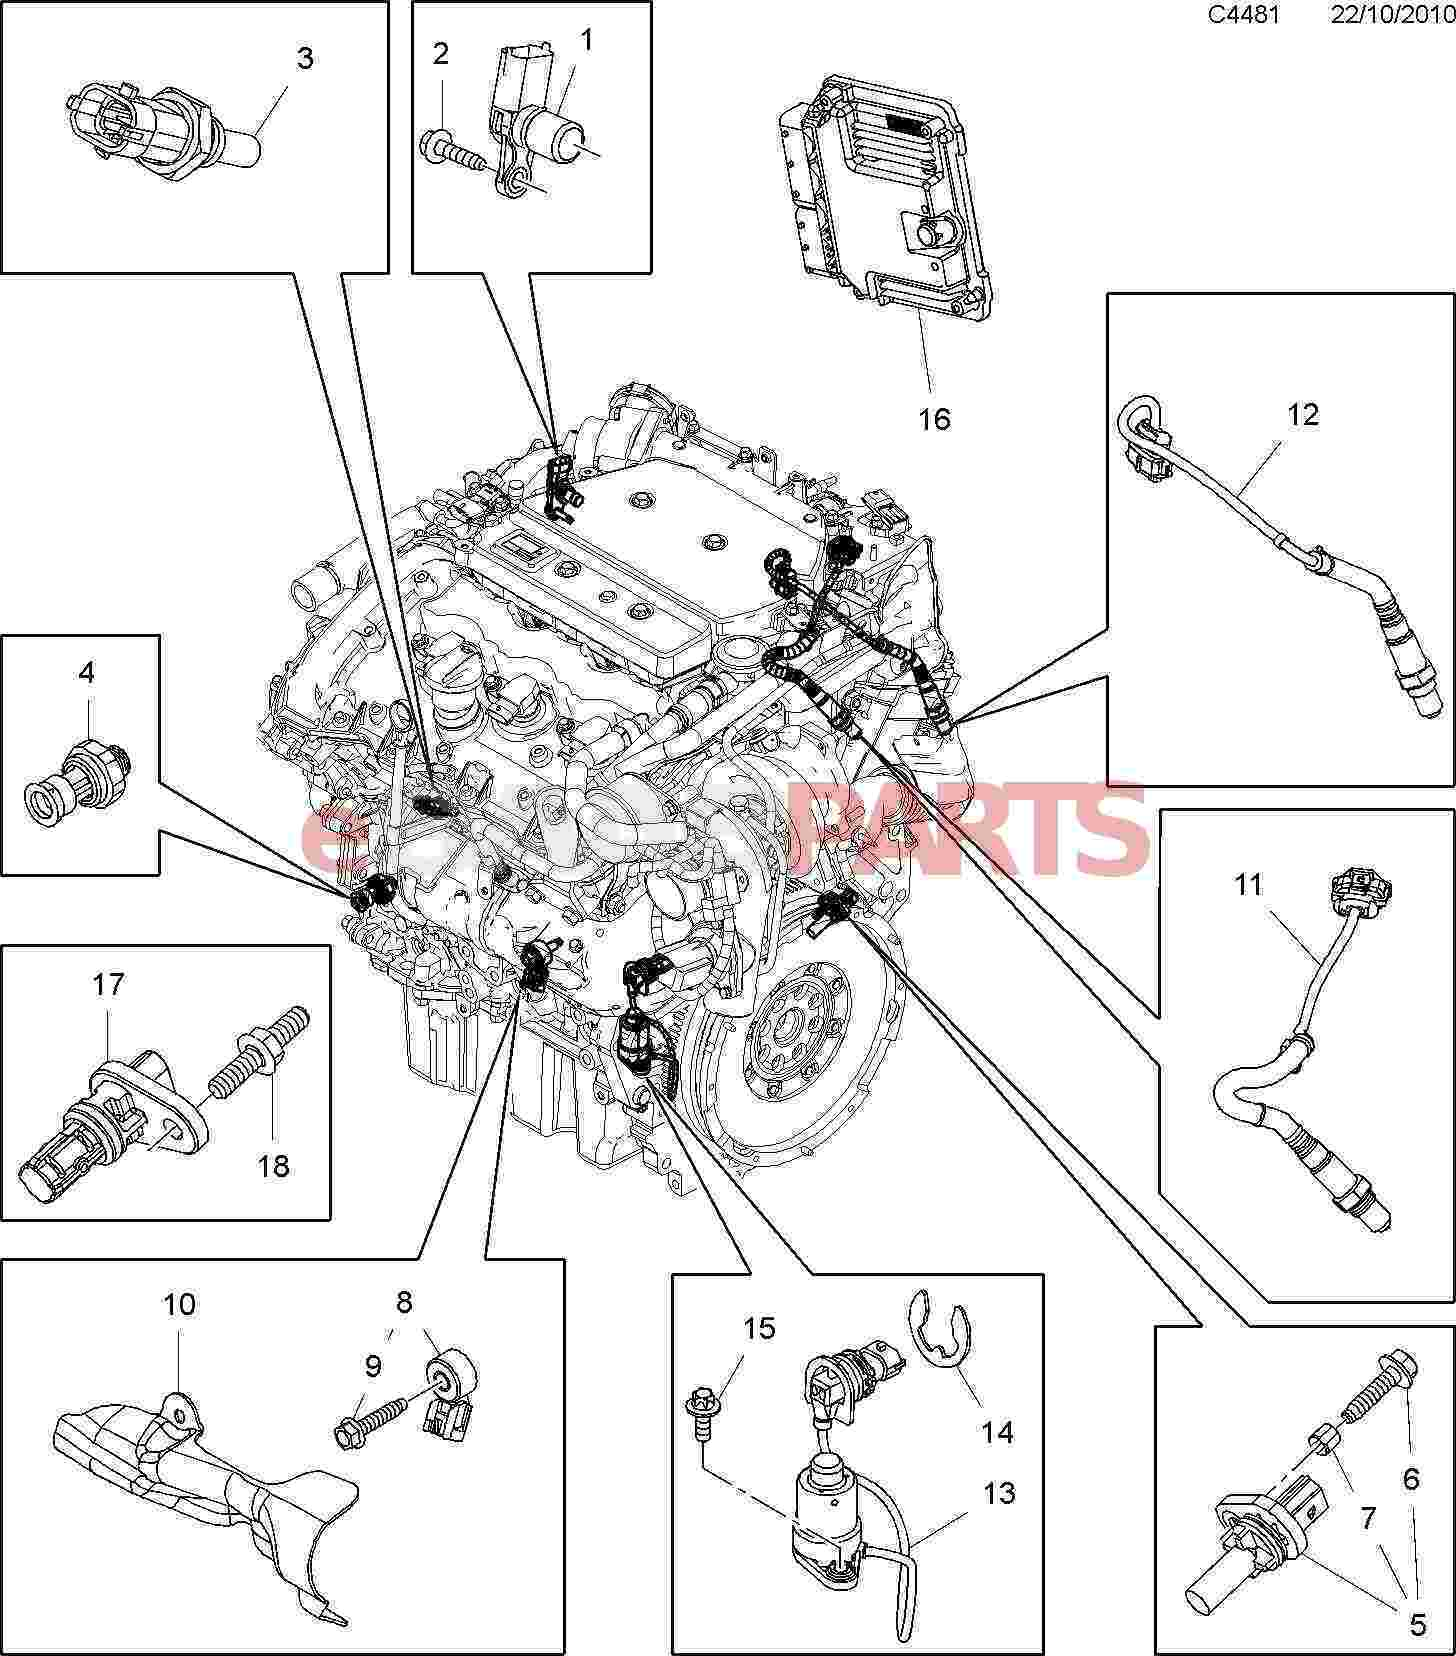 hight resolution of 2002 saab 9 5 2 3 engine diagram wiring diagram img engine diagram 99 saab 9 3 turbo